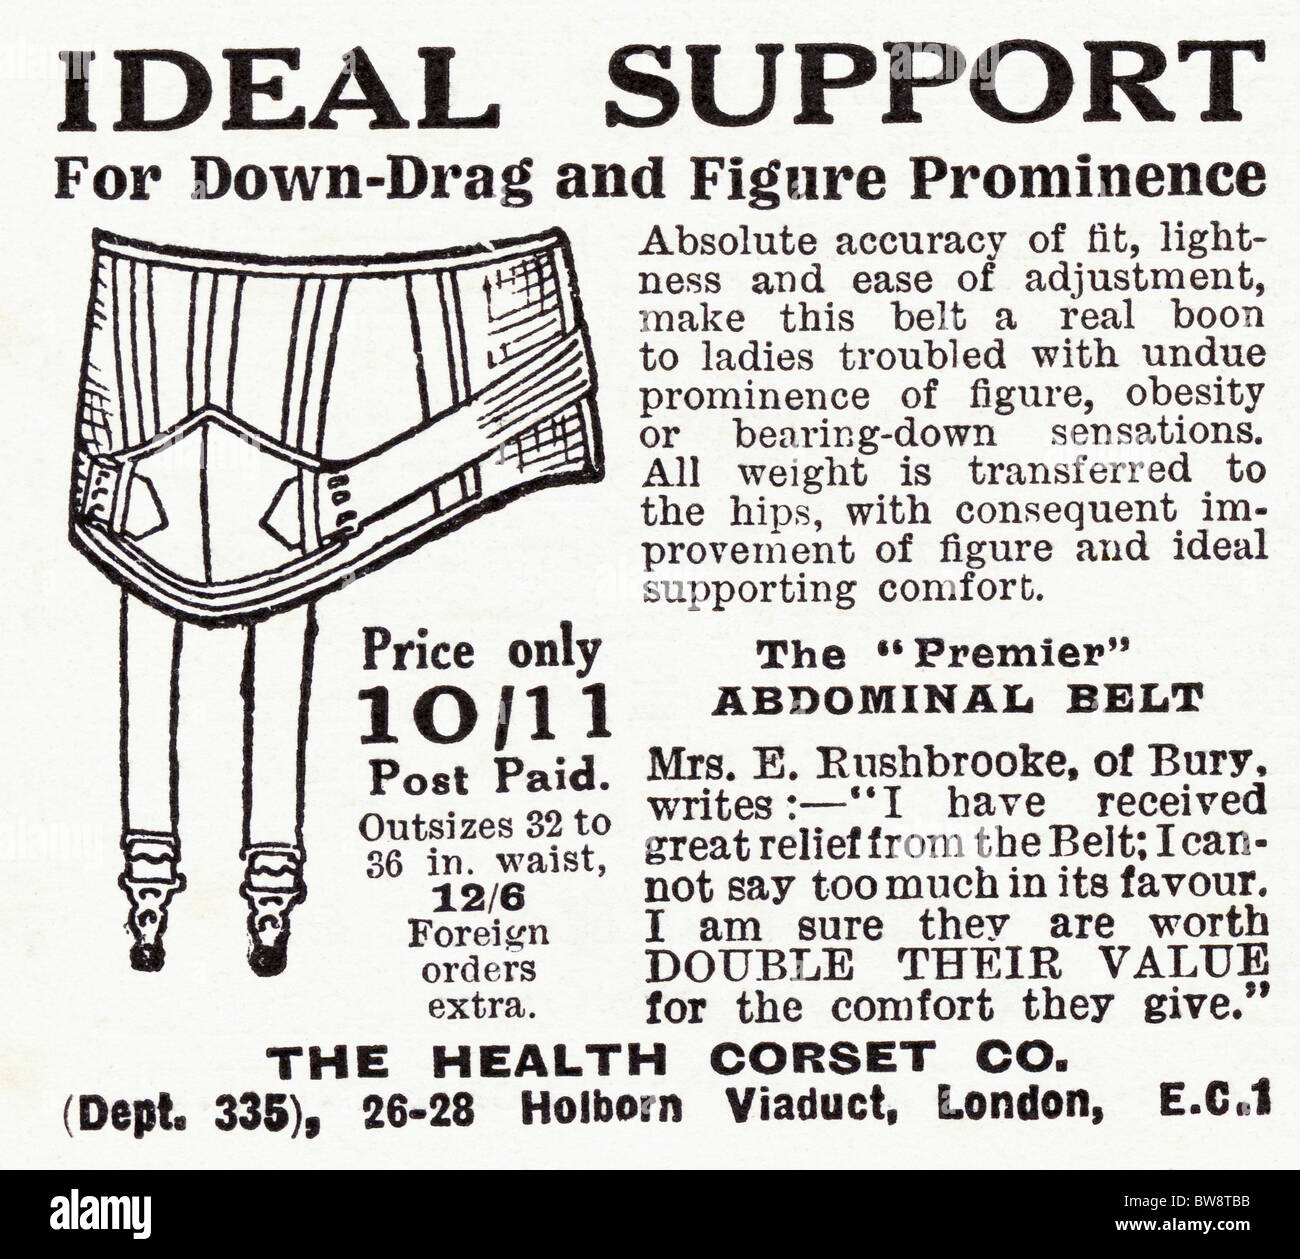 Advertisement for abdominal belt corset in English magazine dated 1928 - Stock Image